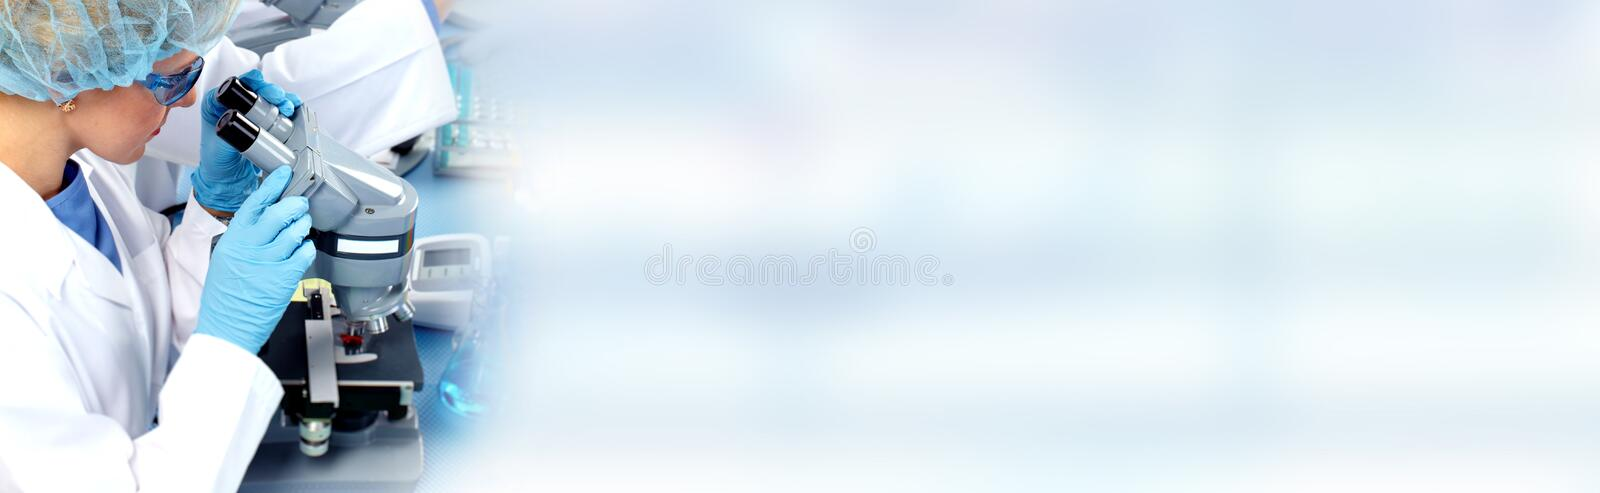 Biotechnology research scientist royalty free stock image